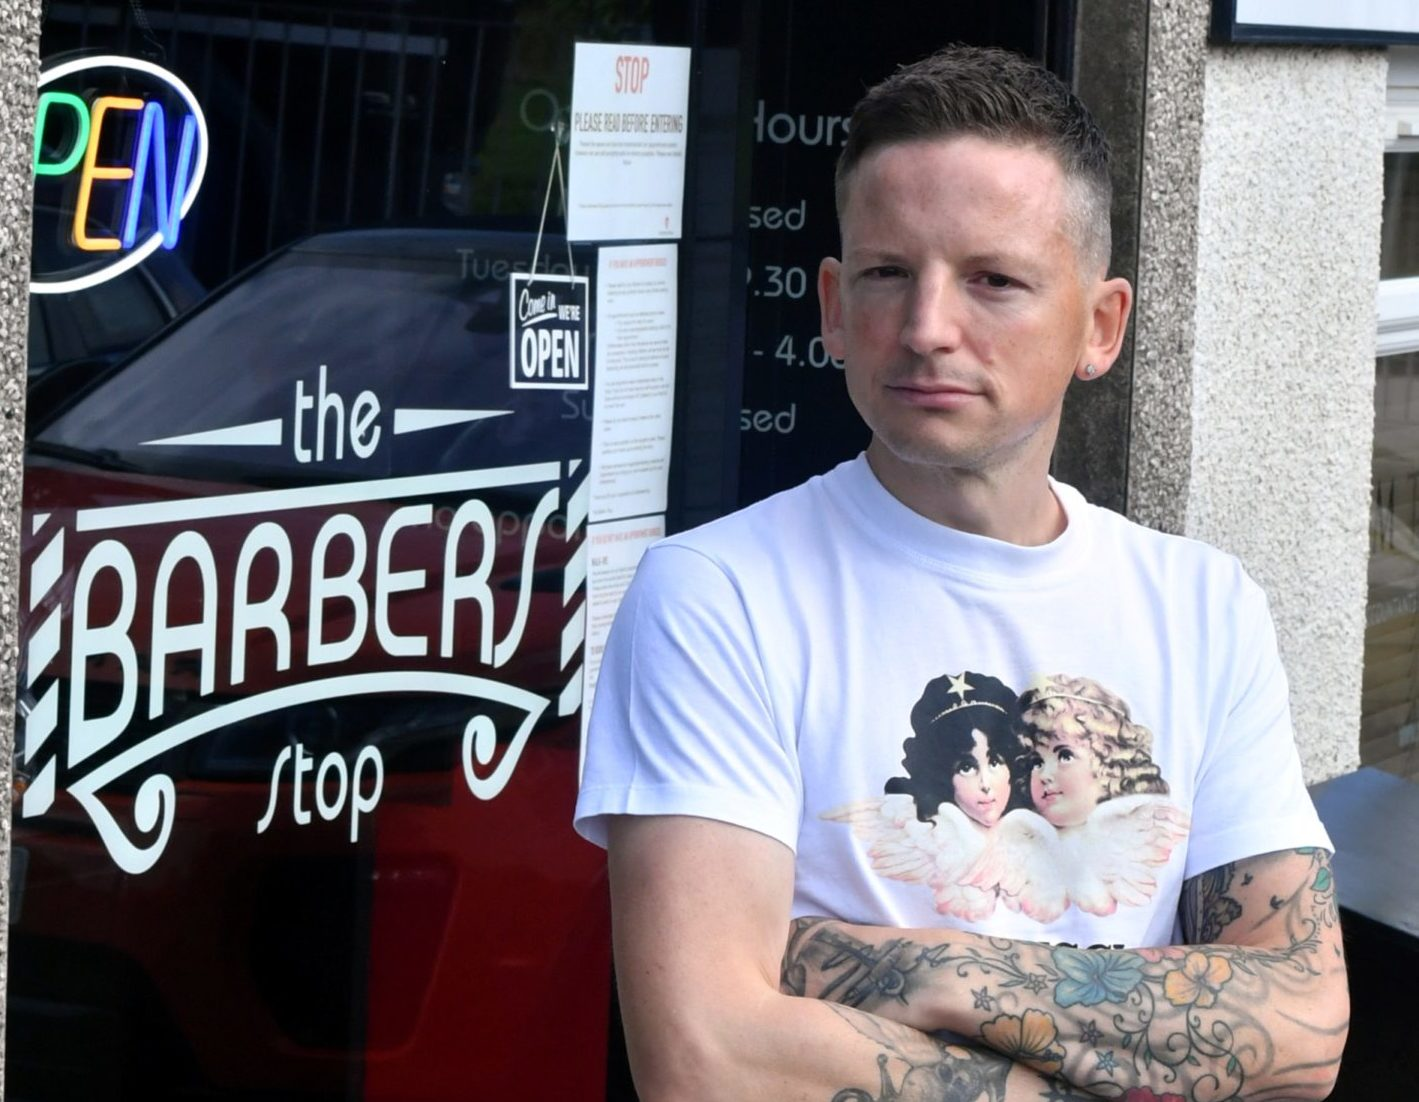 Colin Morrice who owns the Barber Stop on Wellington Road